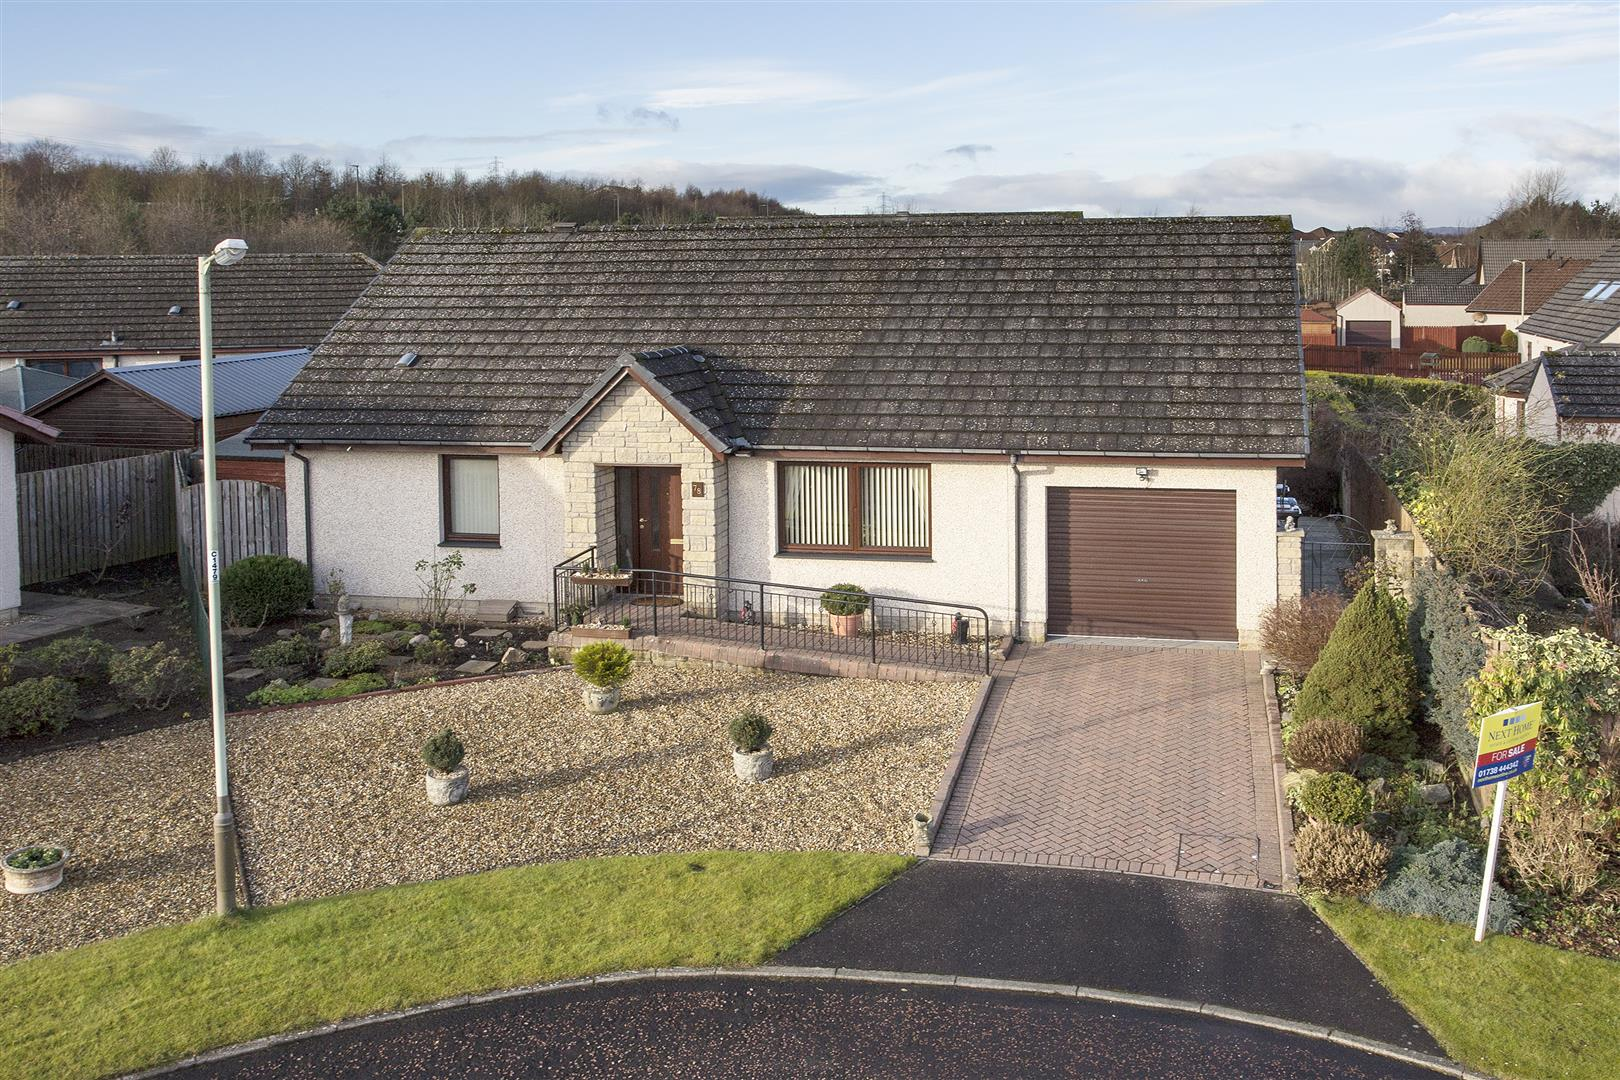 78, Innerleithen Way, Perth, Perthshire, PH1 1RN, UK